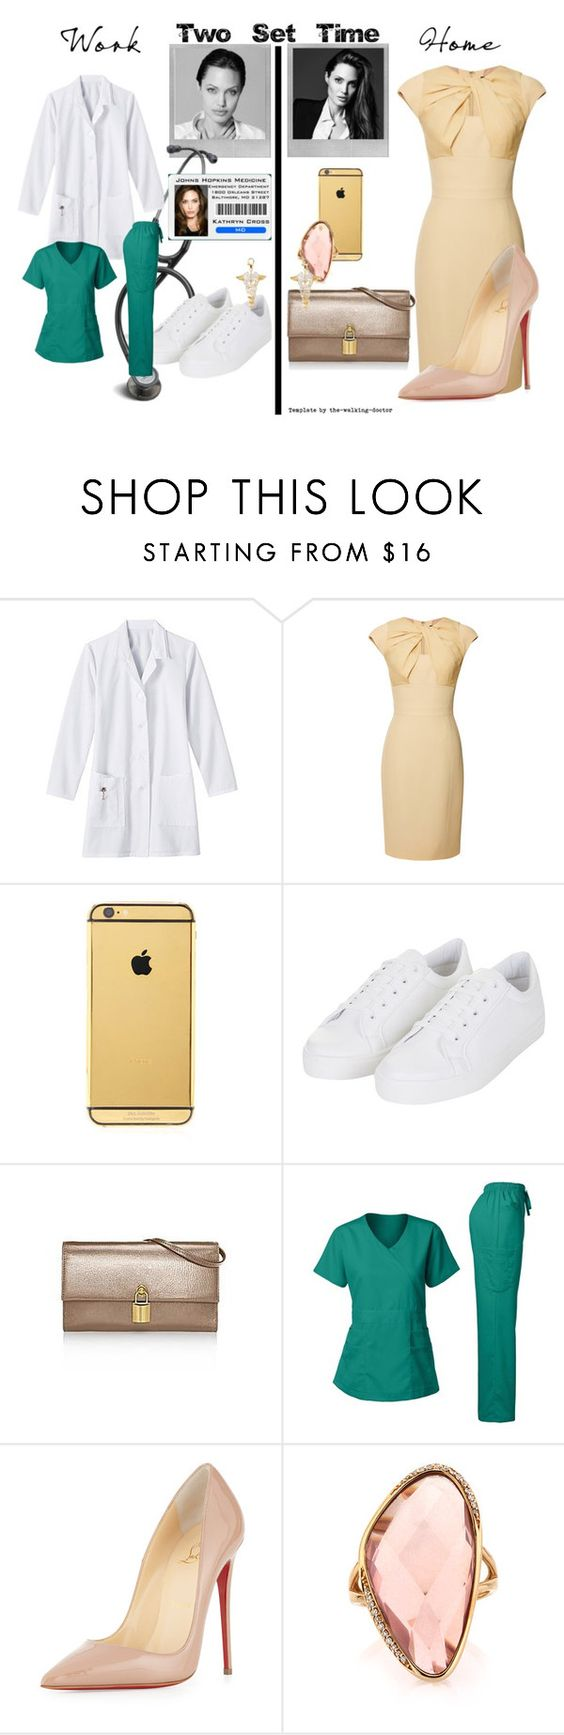 """Set #1618 - Kit at Work and Home"" by the-walking-doctor on Polyvore featuring ANGELINA, Elie Saab, Goldgenie, Topshop, Christian Louboutin, Mark Broumand and Polaroid"